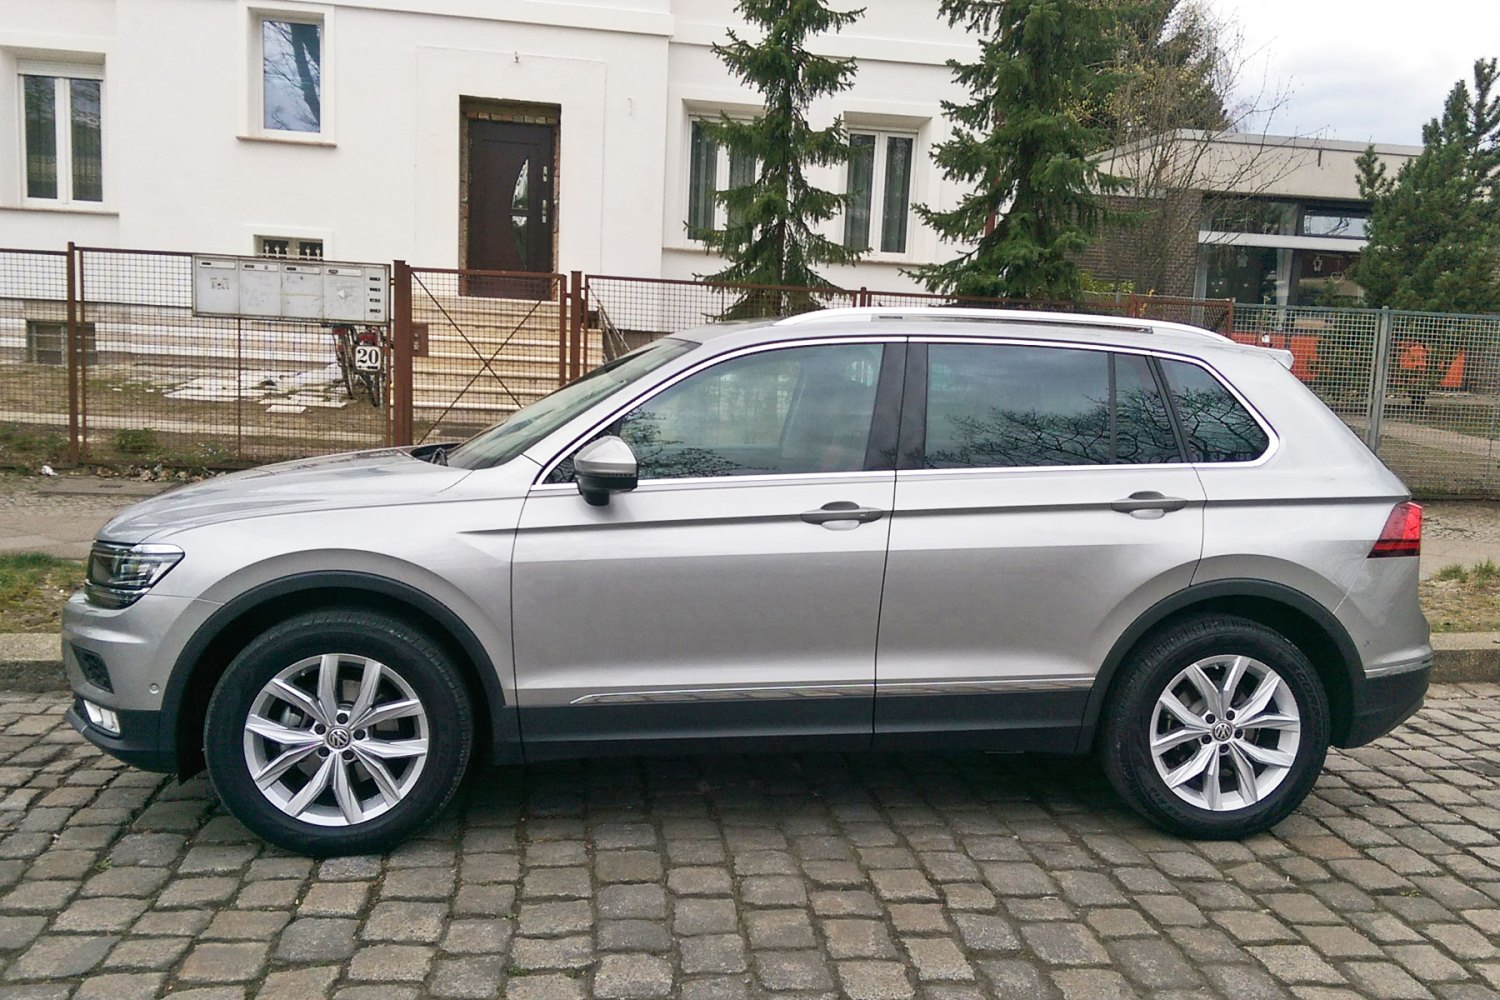 Unlocked: 2016 Volkswagen Tiguan driven on road (and off it)